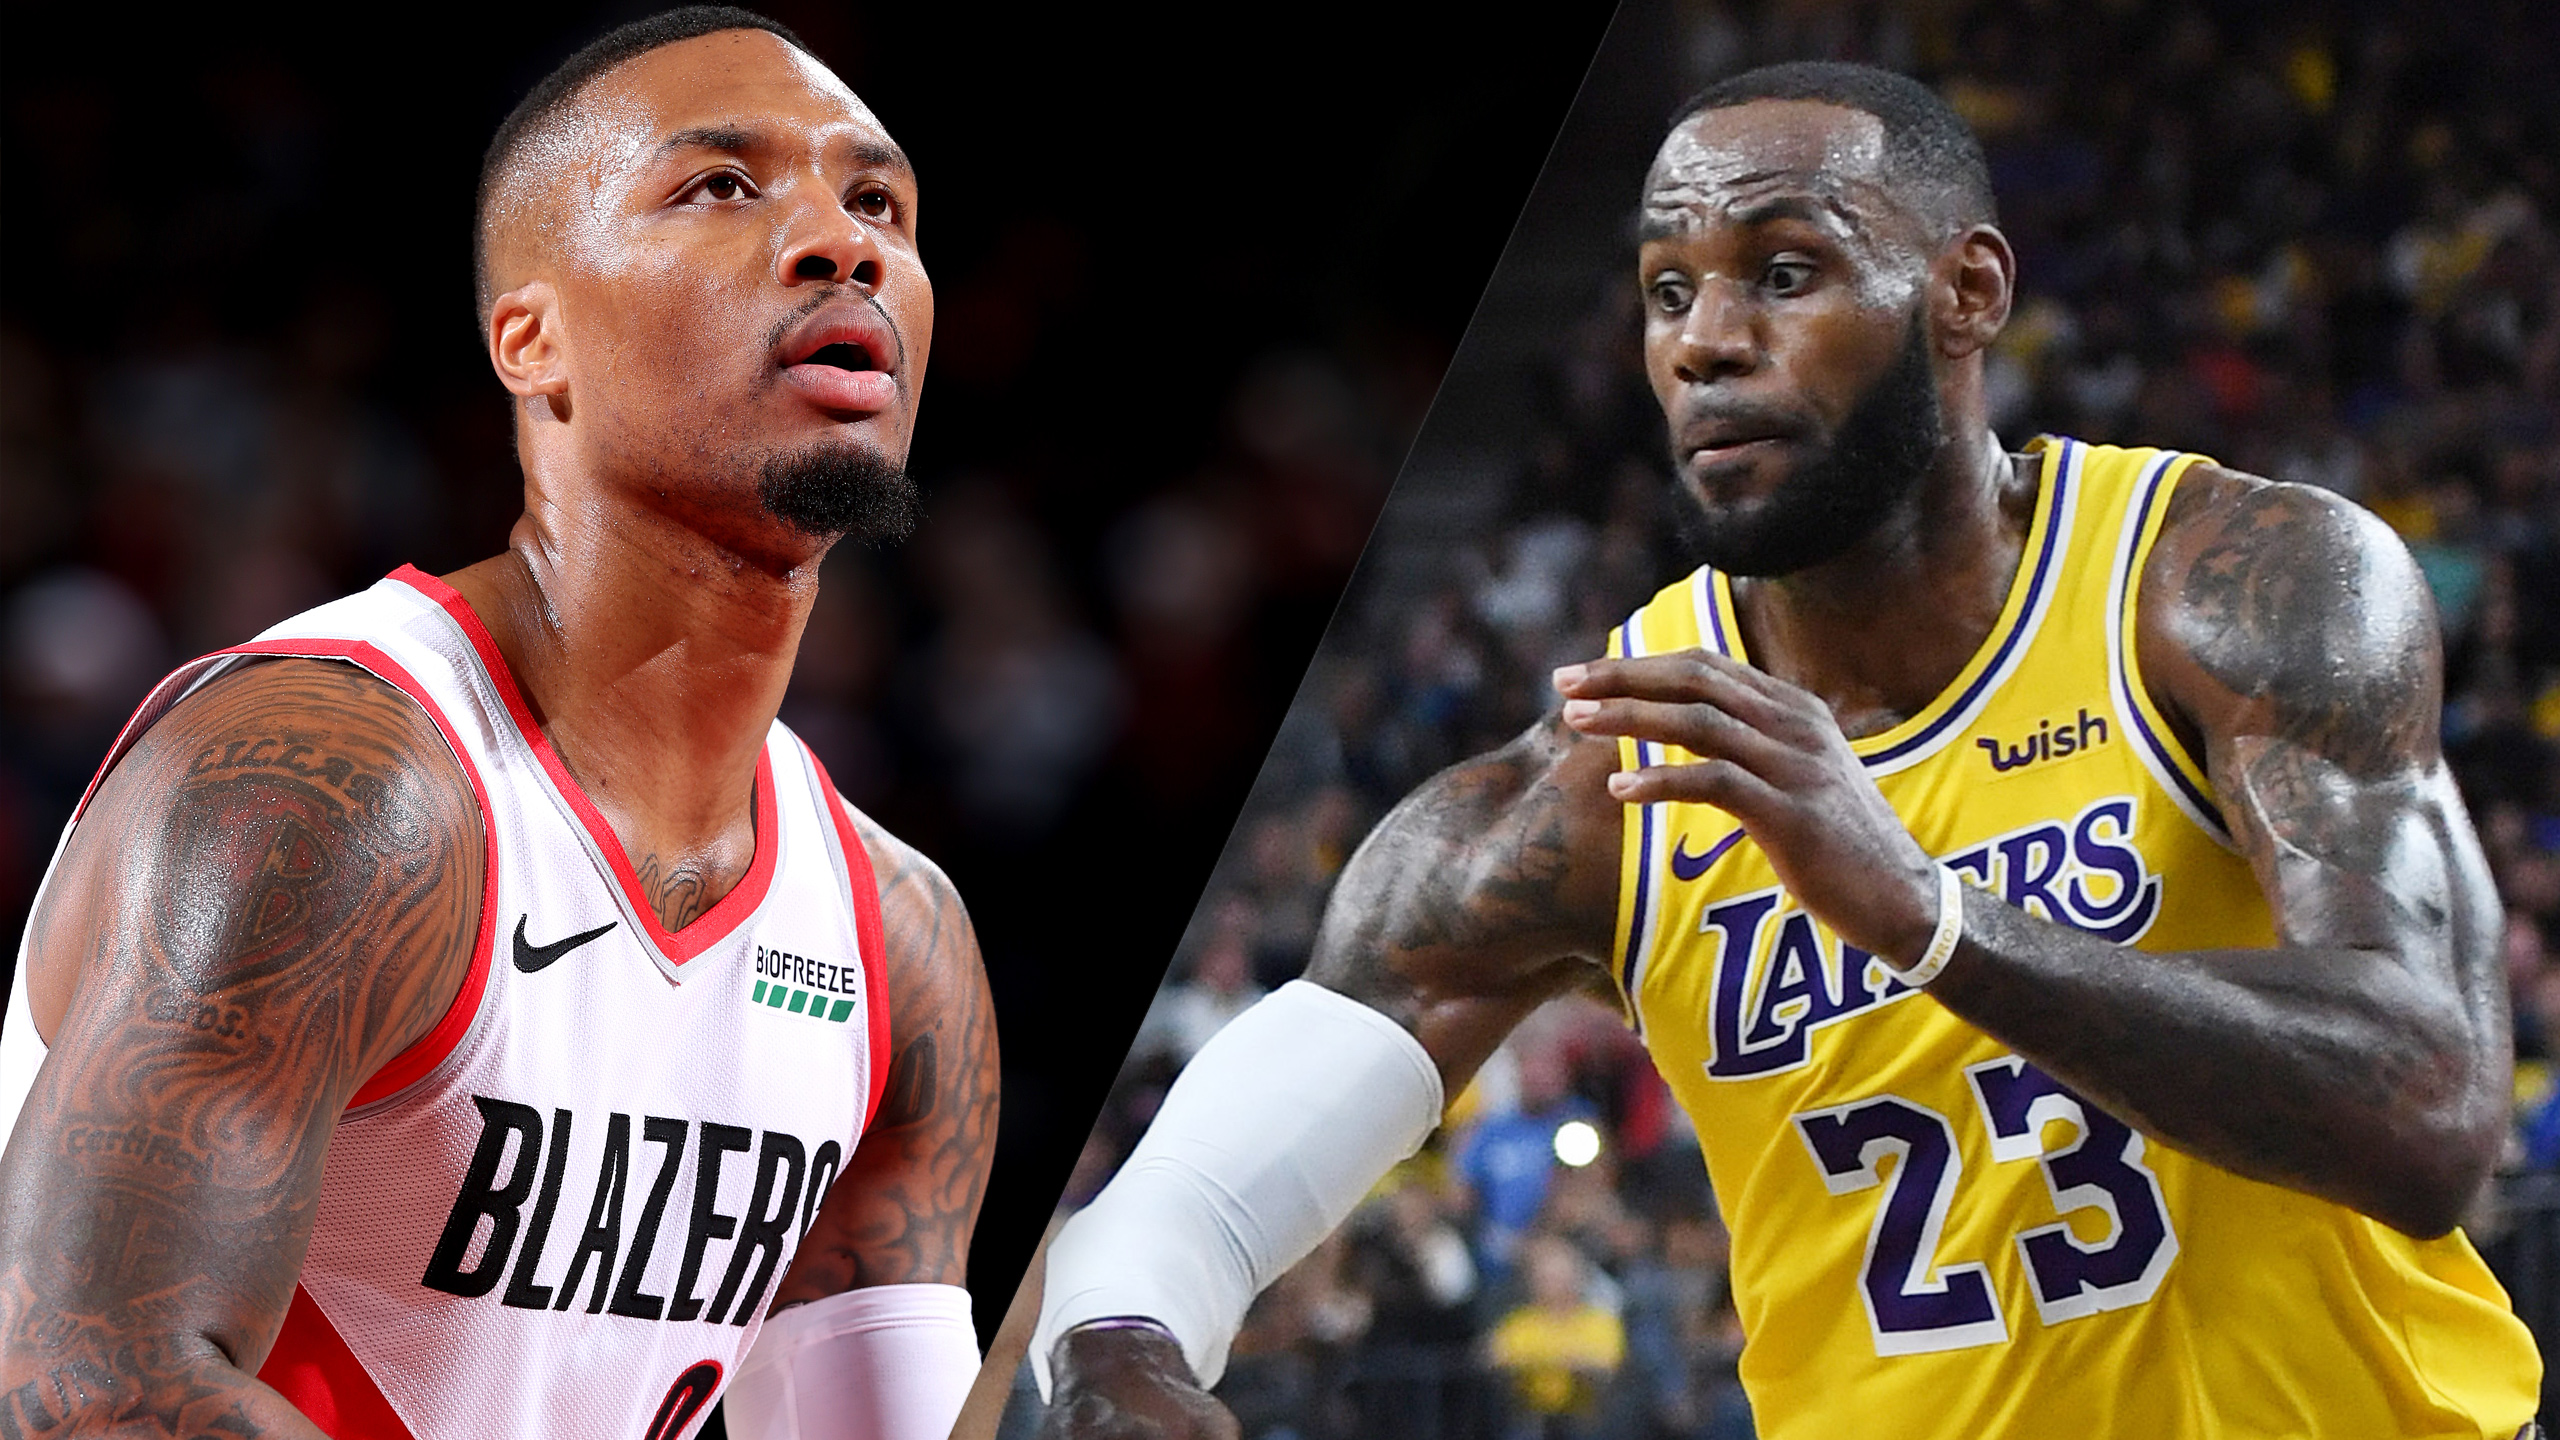 Portland Trail Blazers vs. Los Angeles Lakers